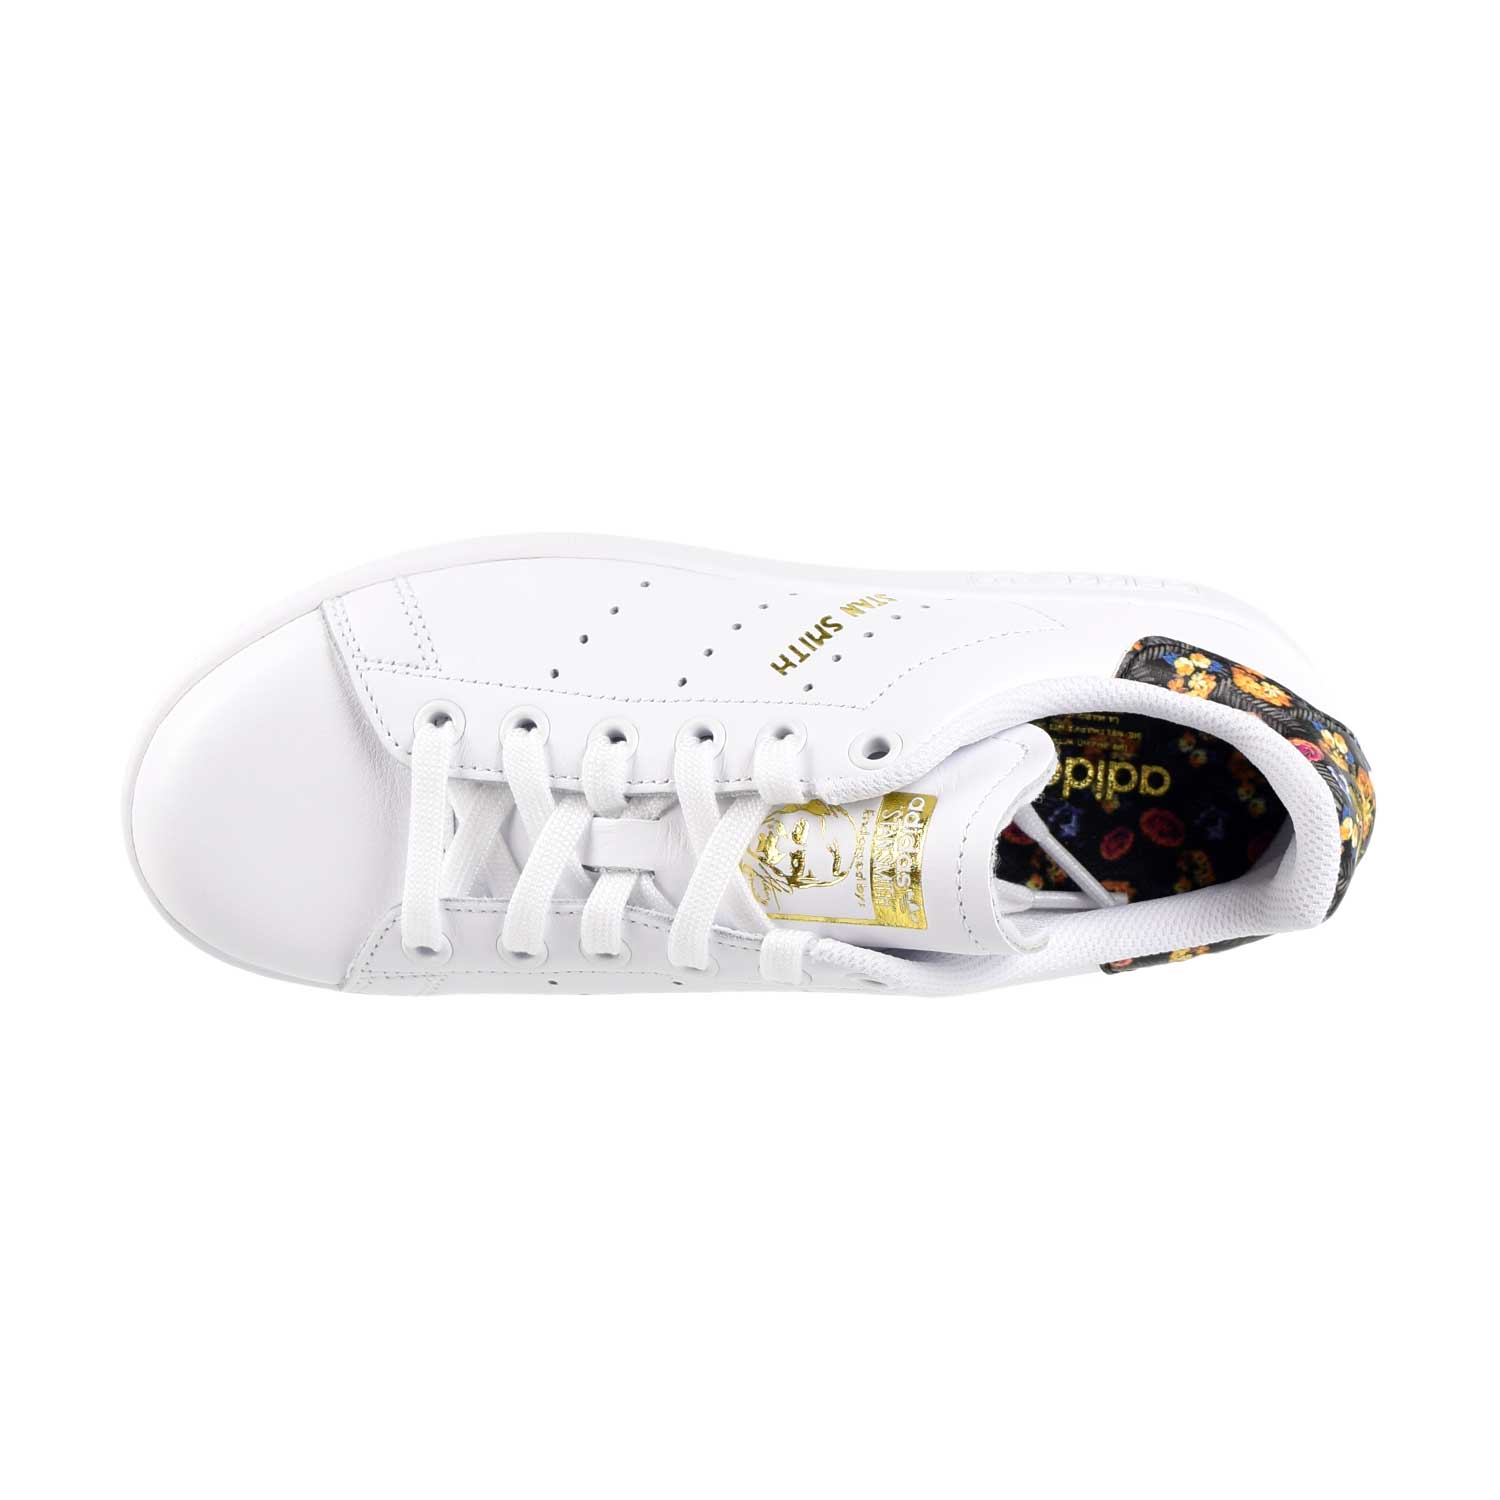 Adidas 2019 Stan Smith Buckle Safety Buckle Shoes Will Soon